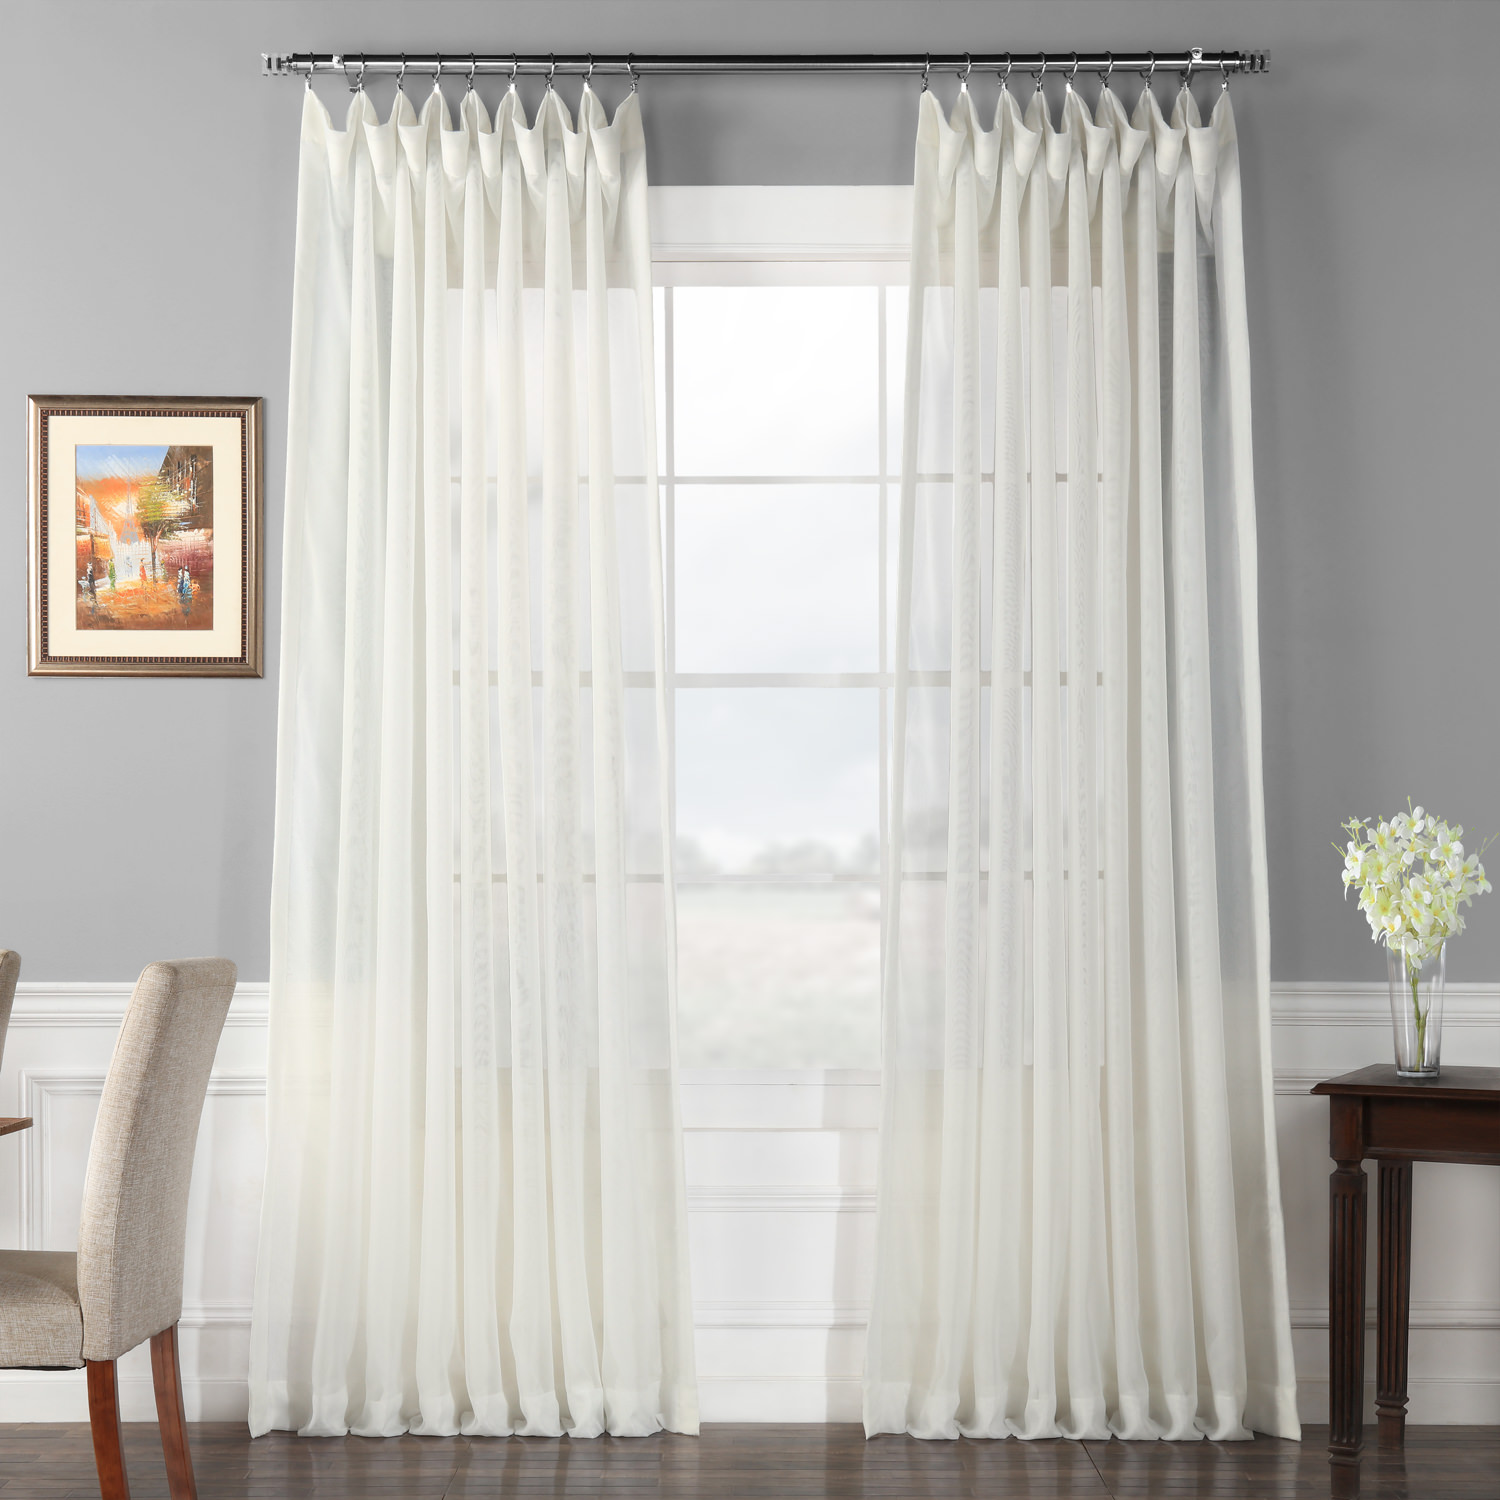 White Sheer Door Panel Curtains Double Curtains With Sheer Curtain Menzilperde Net